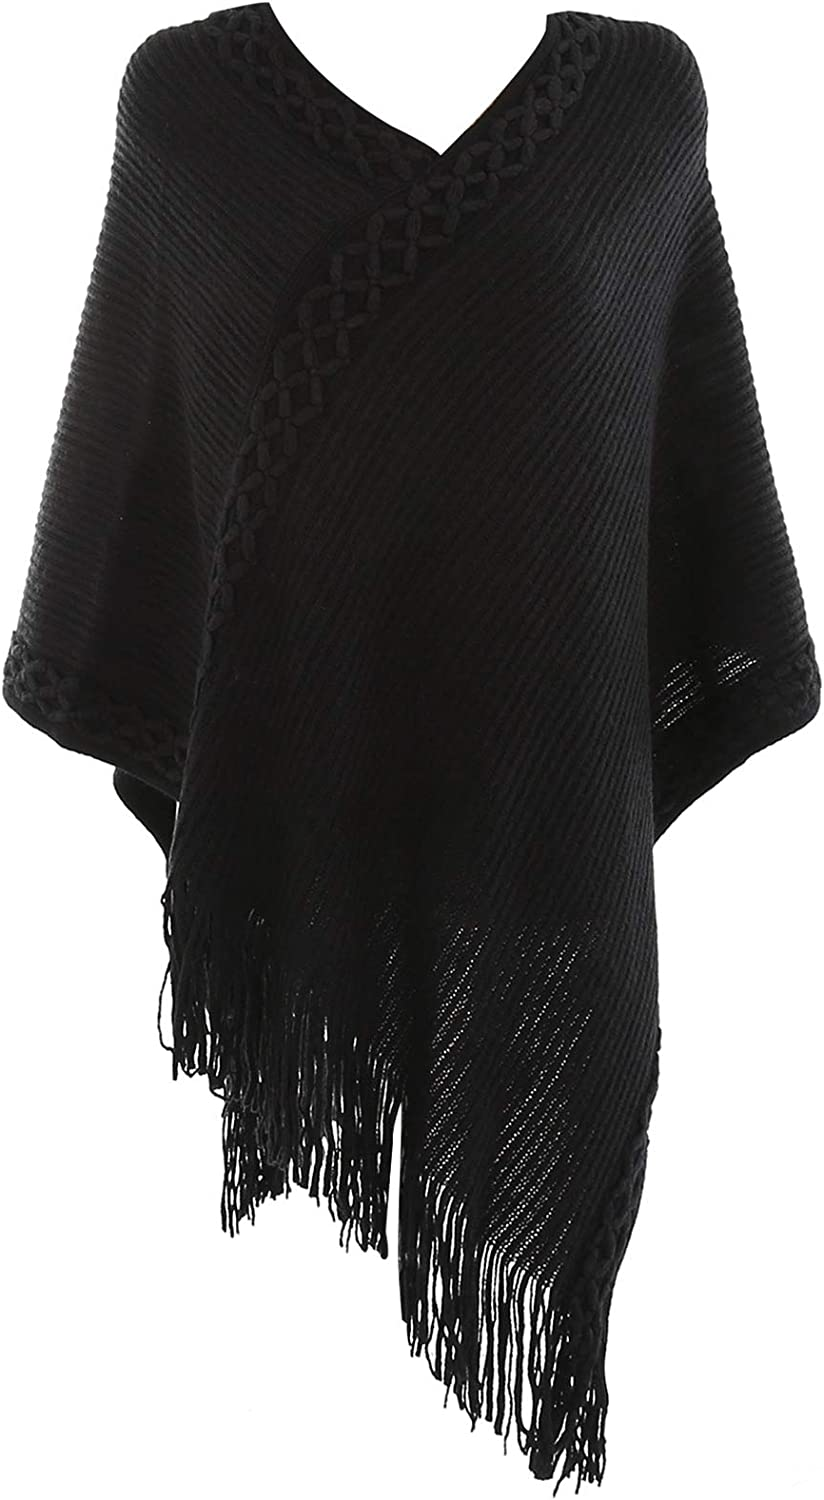 Women's Elegant Flower Pattern Knitted Shawl Batwing Blouse with Fringed Sides Black